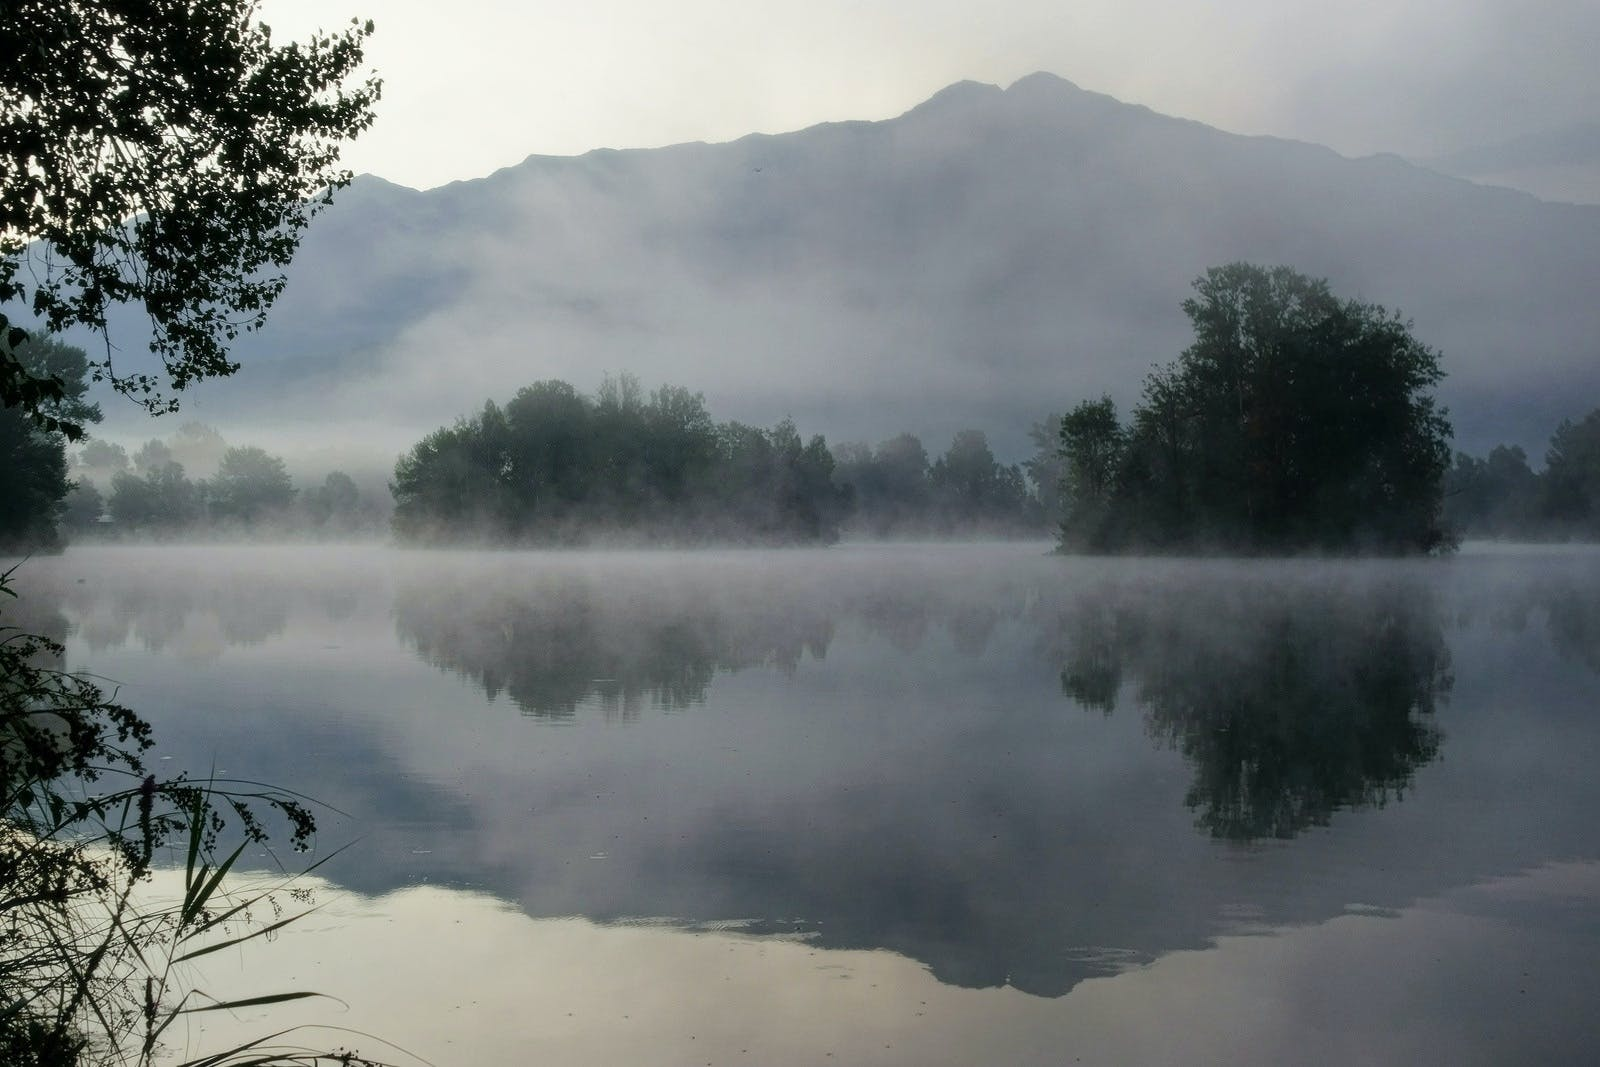 Bosy of Water Surrounded by Mist